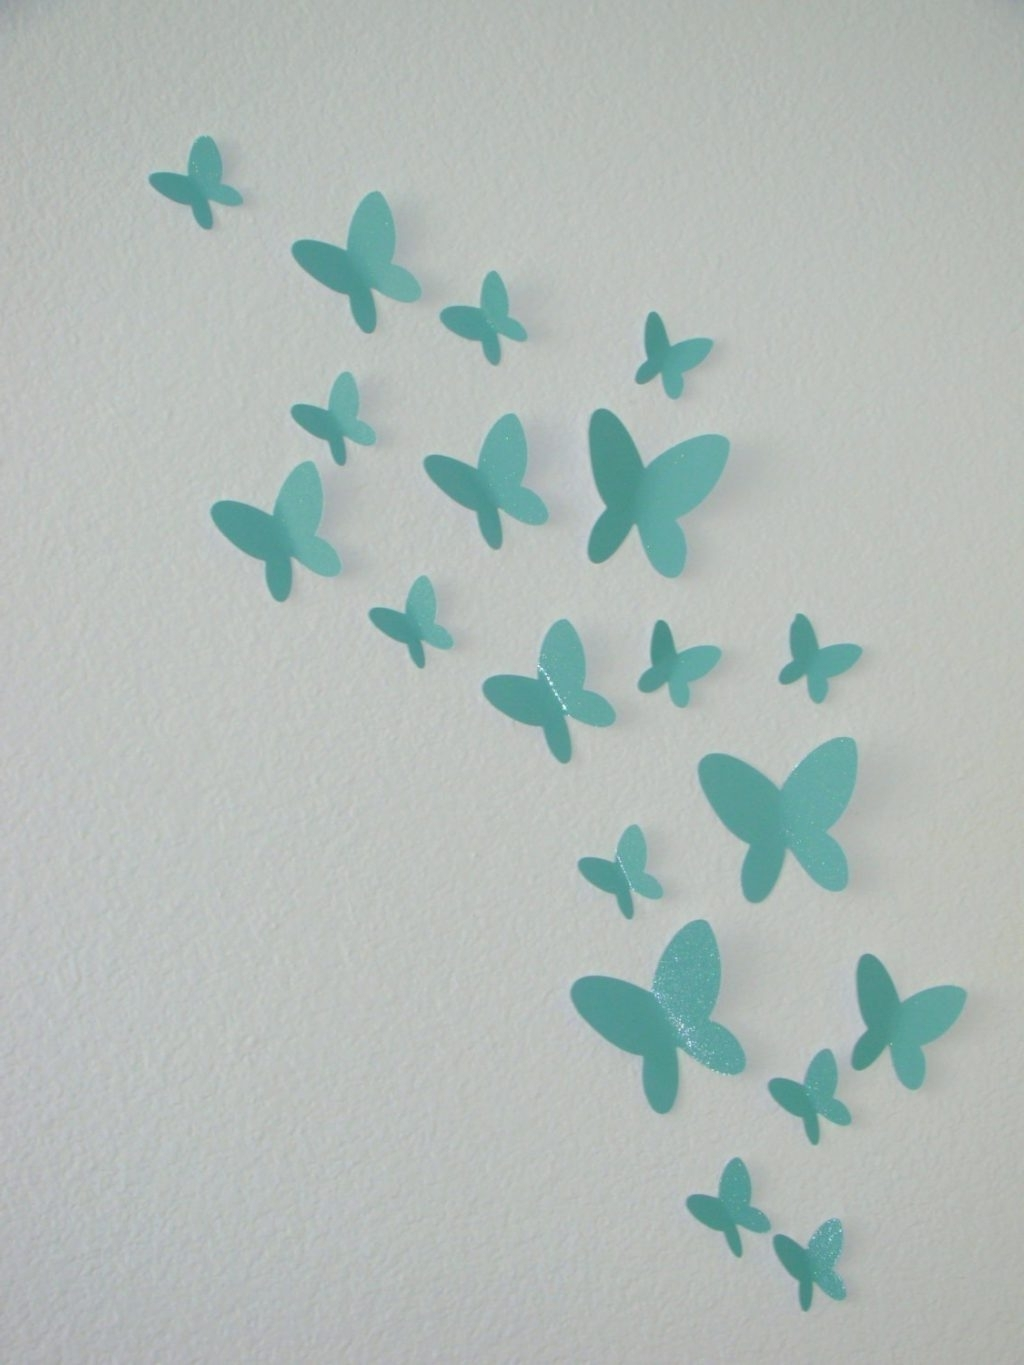 Wall Arts ~ Blue Butterfly 3D Wall Art 3D Paper Butterfly Wall Art Pertaining To Current 3D Butterfly Wall Art (View 14 of 15)